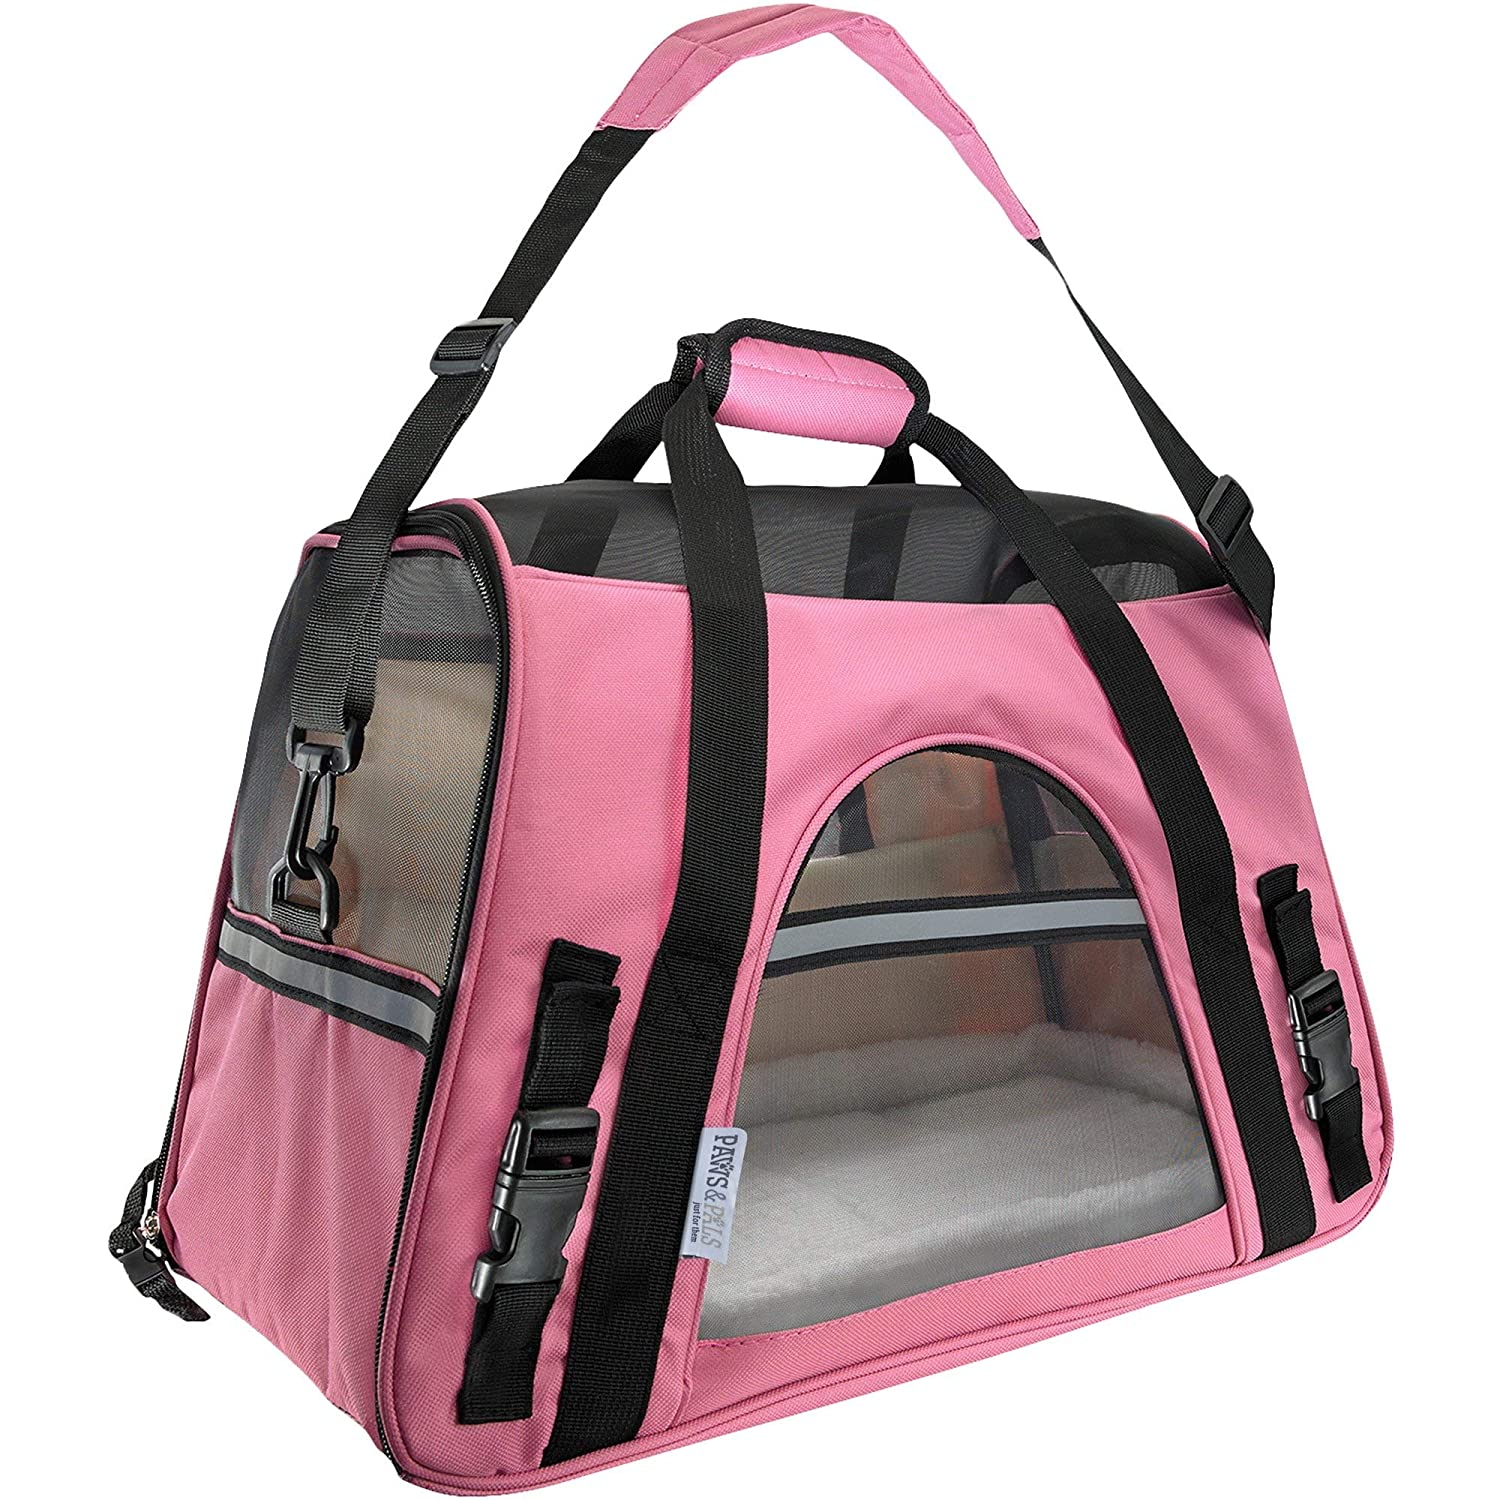 pink Wine Large pink Wine Large OxGord Airline Approved Pet Carriers w  Fleece Bed For Dog & Cat Large, Soft Sided Kennel 2016 Newly Designed Model, pink Wine